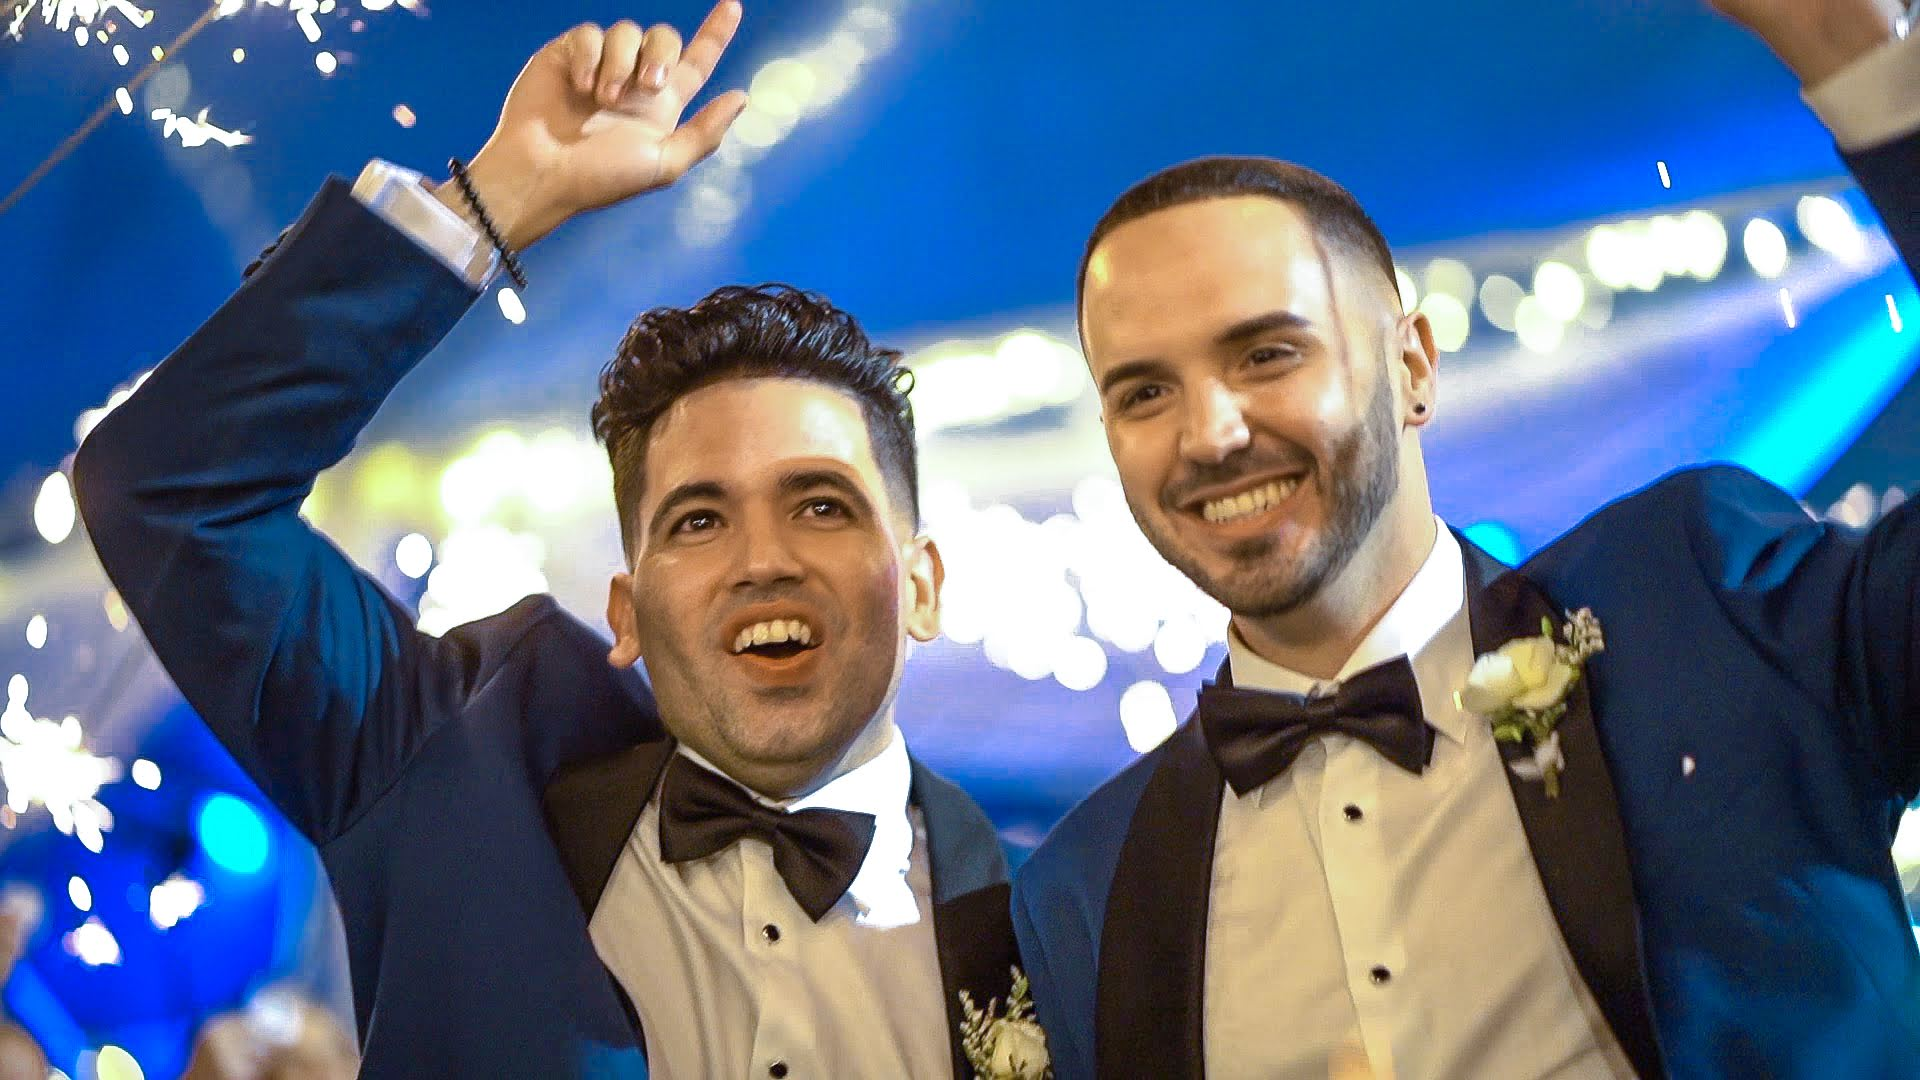 Yoeslan & Amaury - A bilingual wedding in a tropical romantic setting.